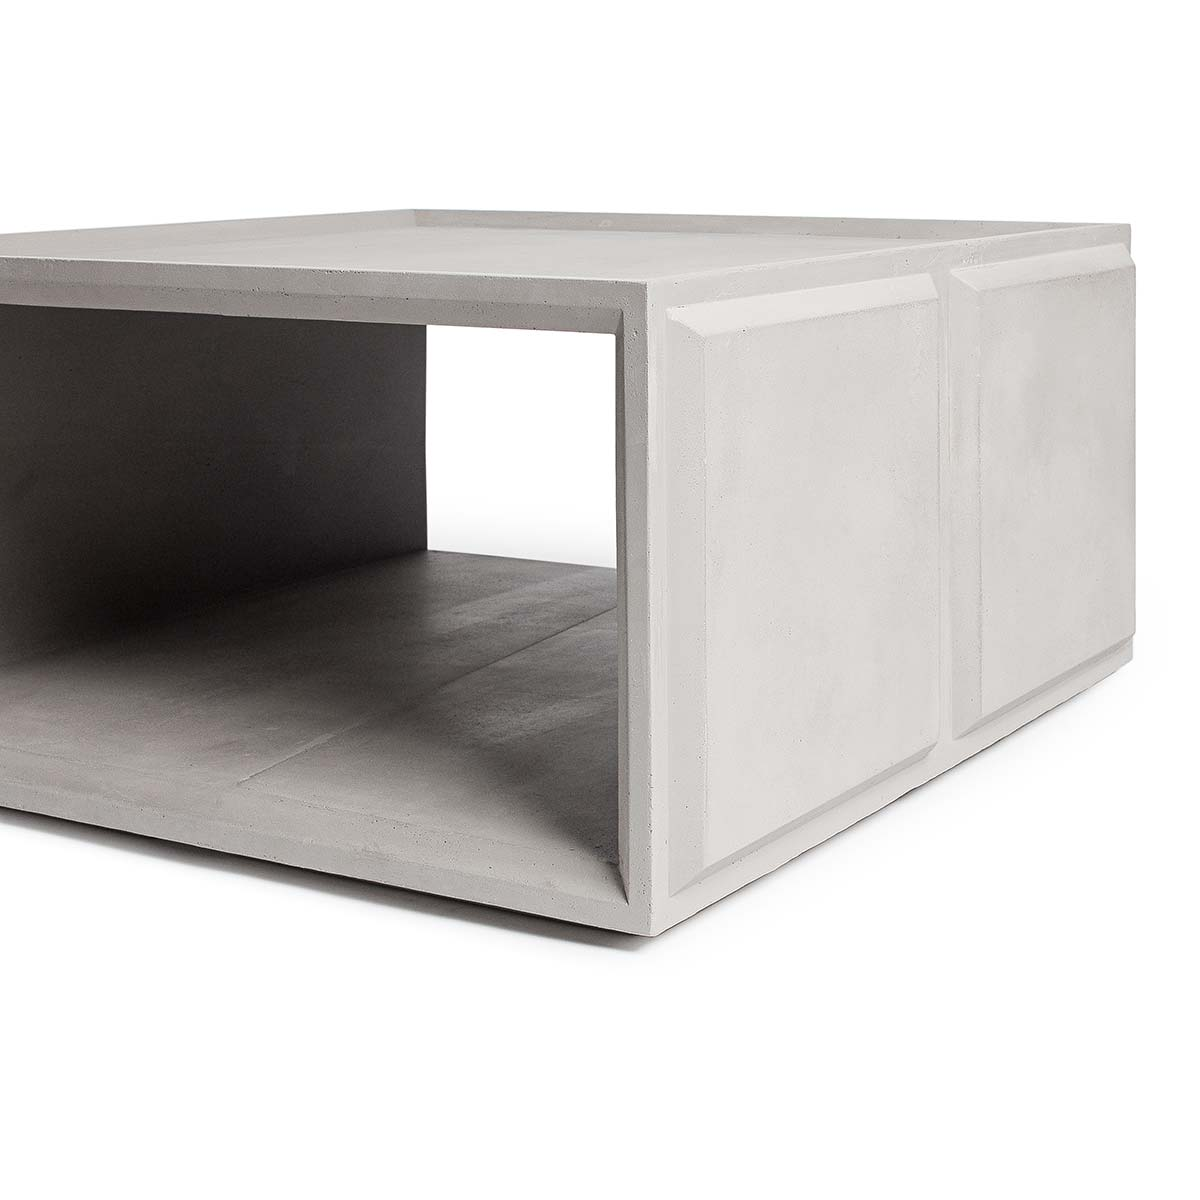 plus-concrete-modular-storage-solution-9